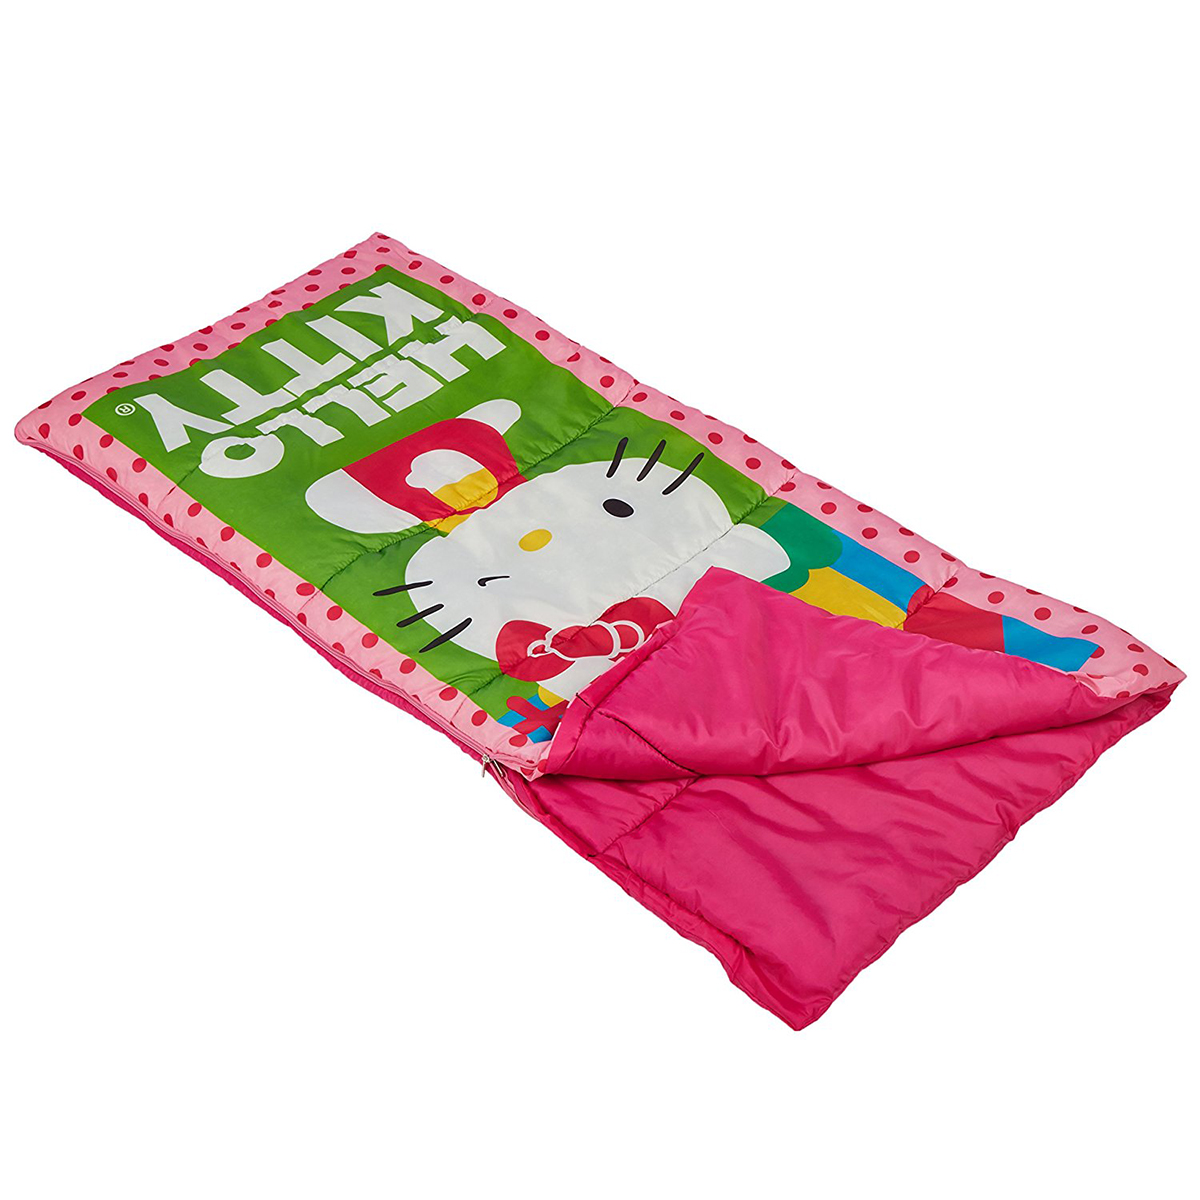 Disney Kids Camping Sleeping Bags Warm Weather Princess